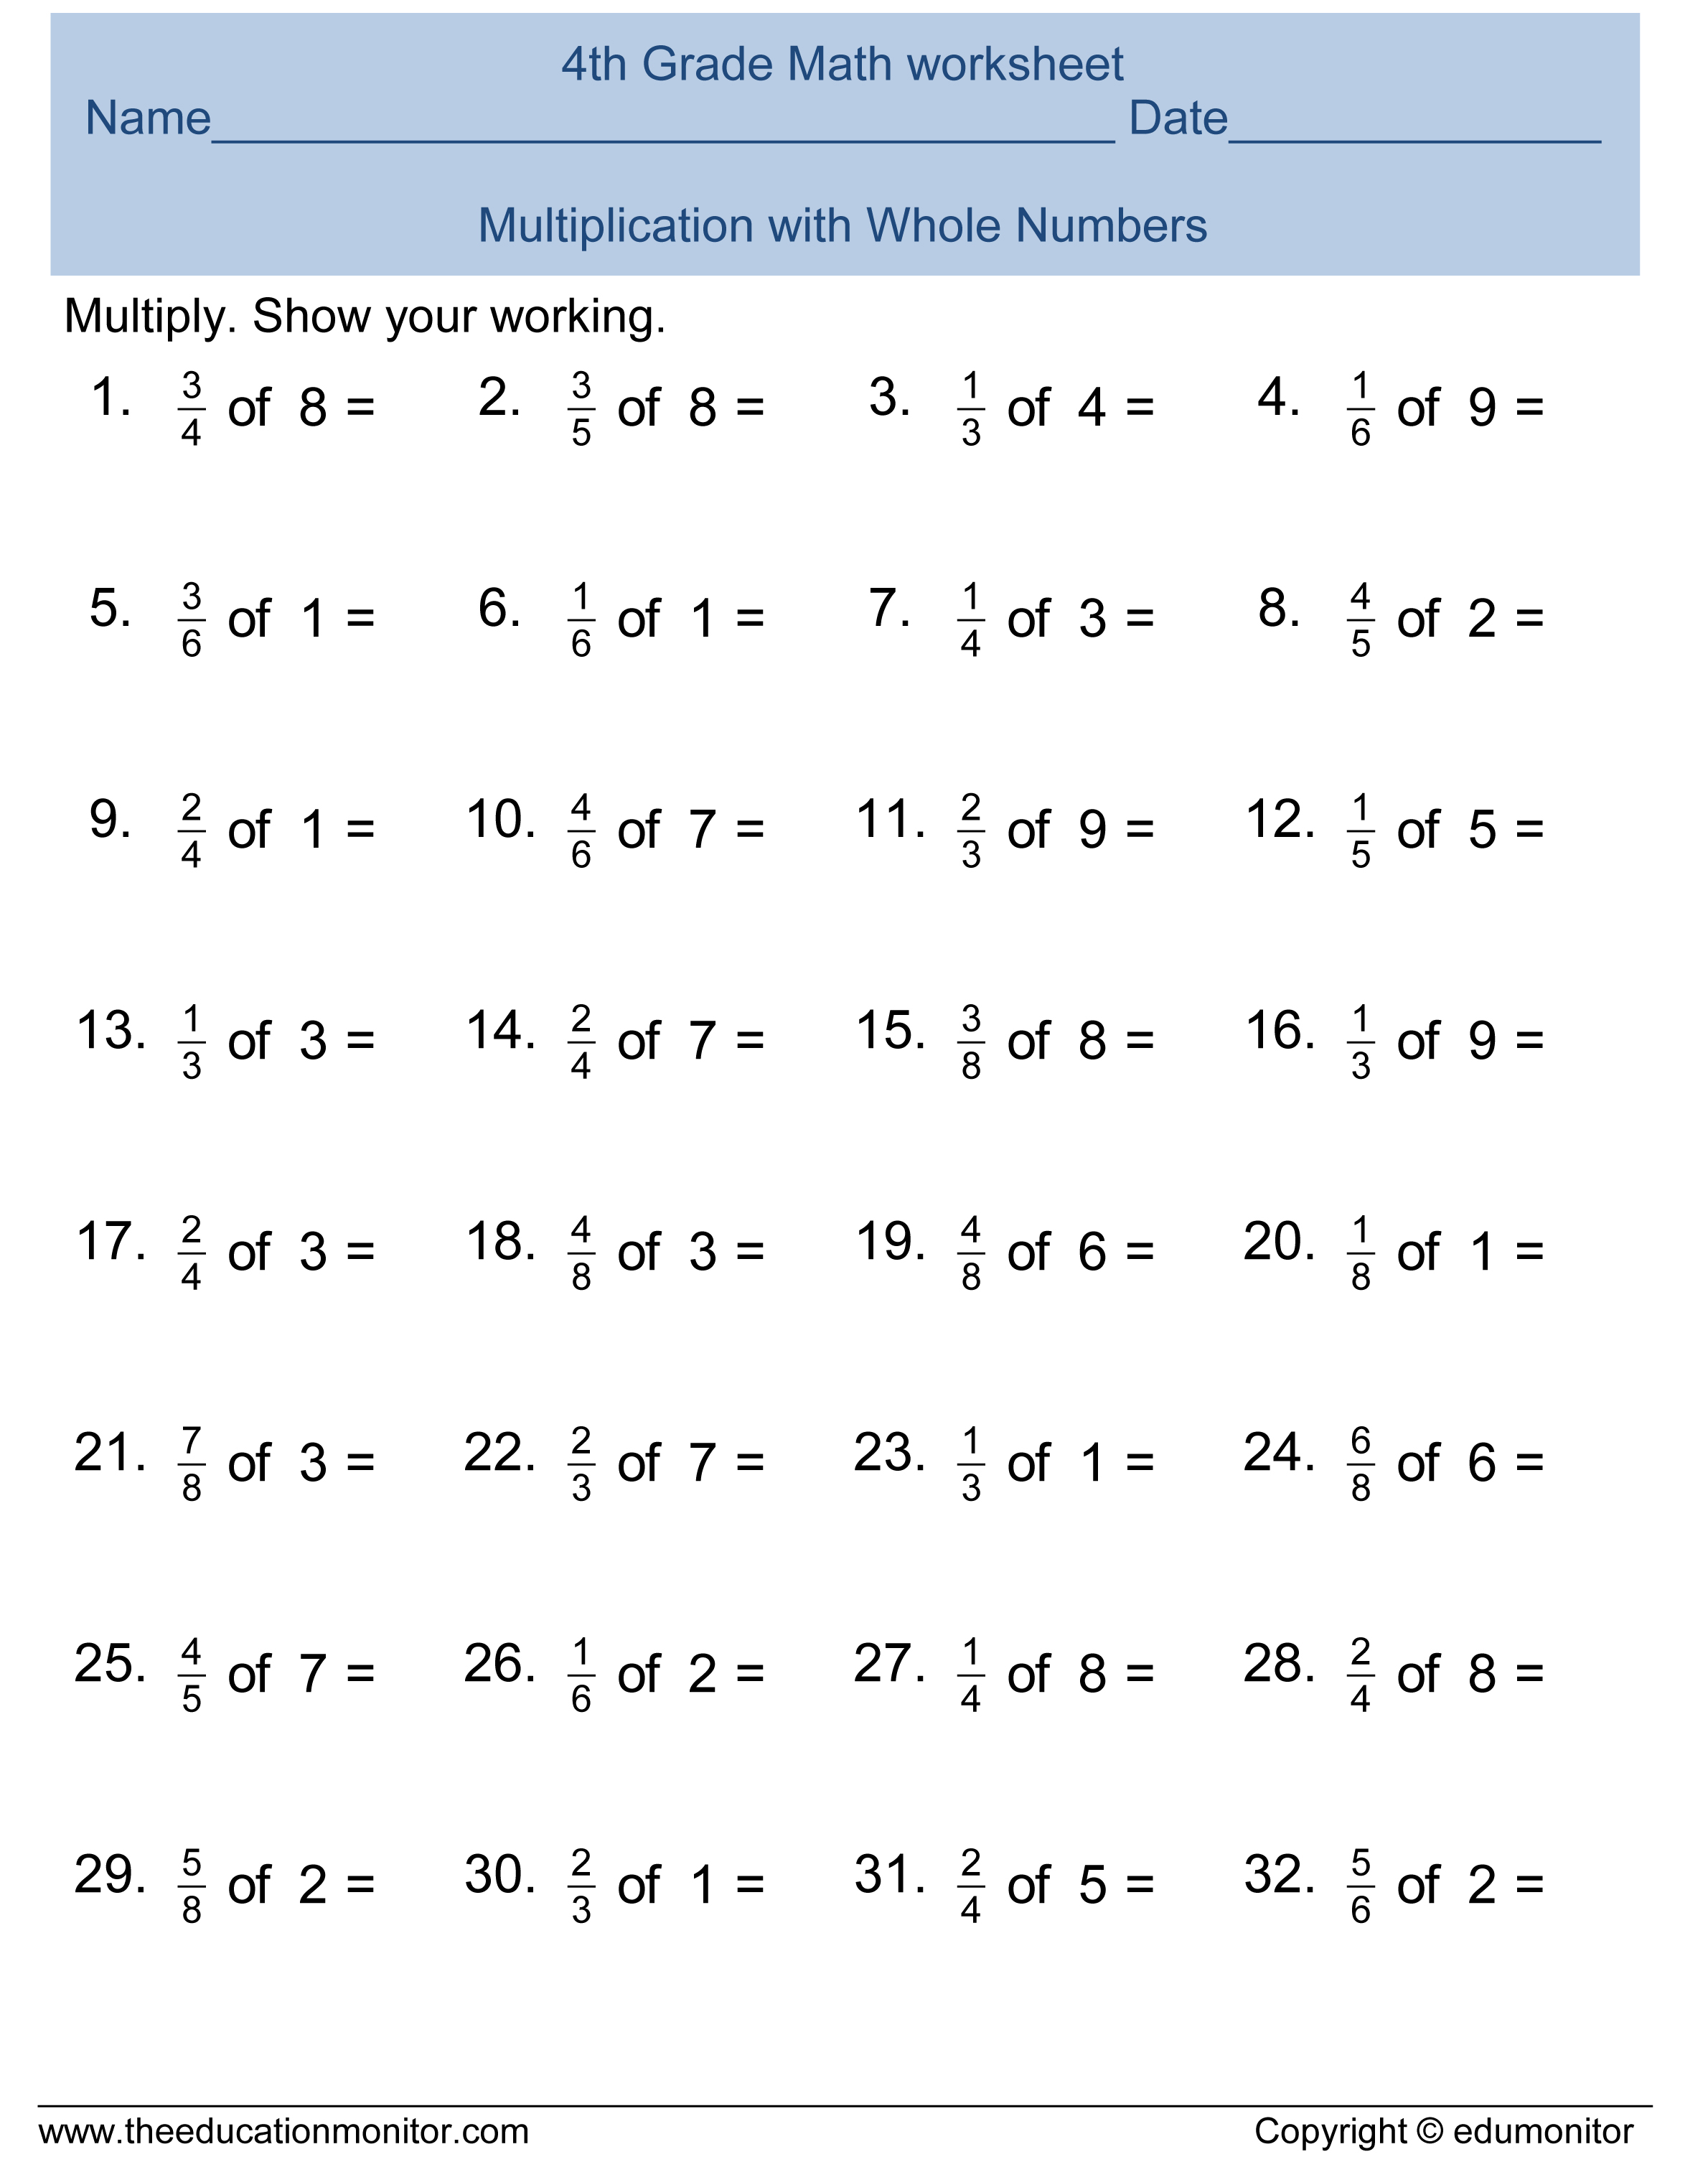 Free Printable Worksheets for 4th Grade – 5th Grade Worksheets Math